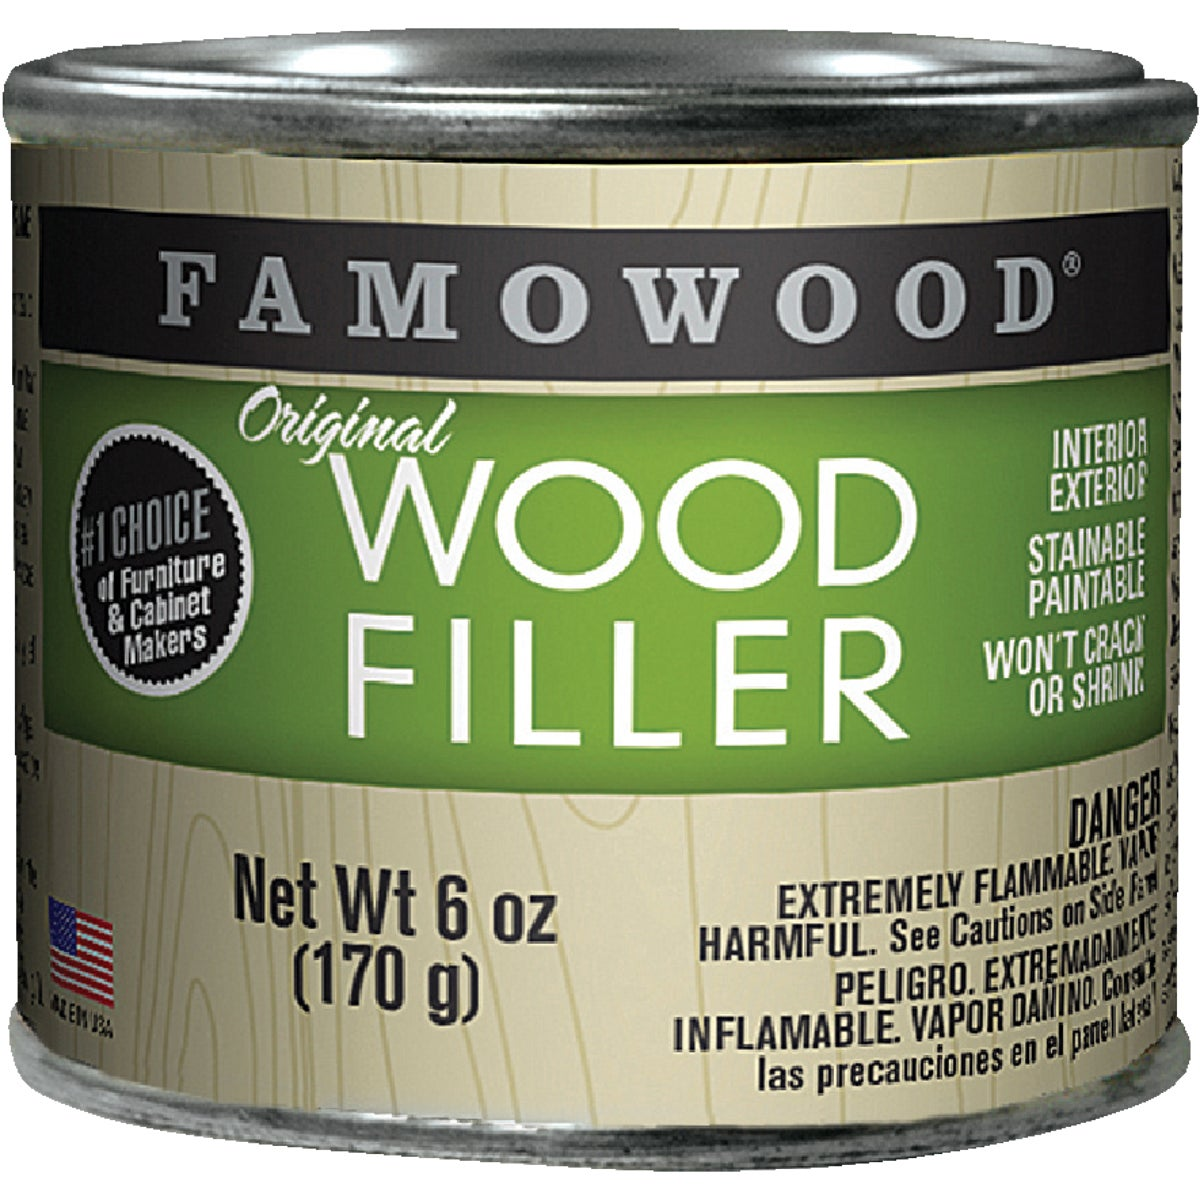 1/4PT CHERRY WOOD FILLER